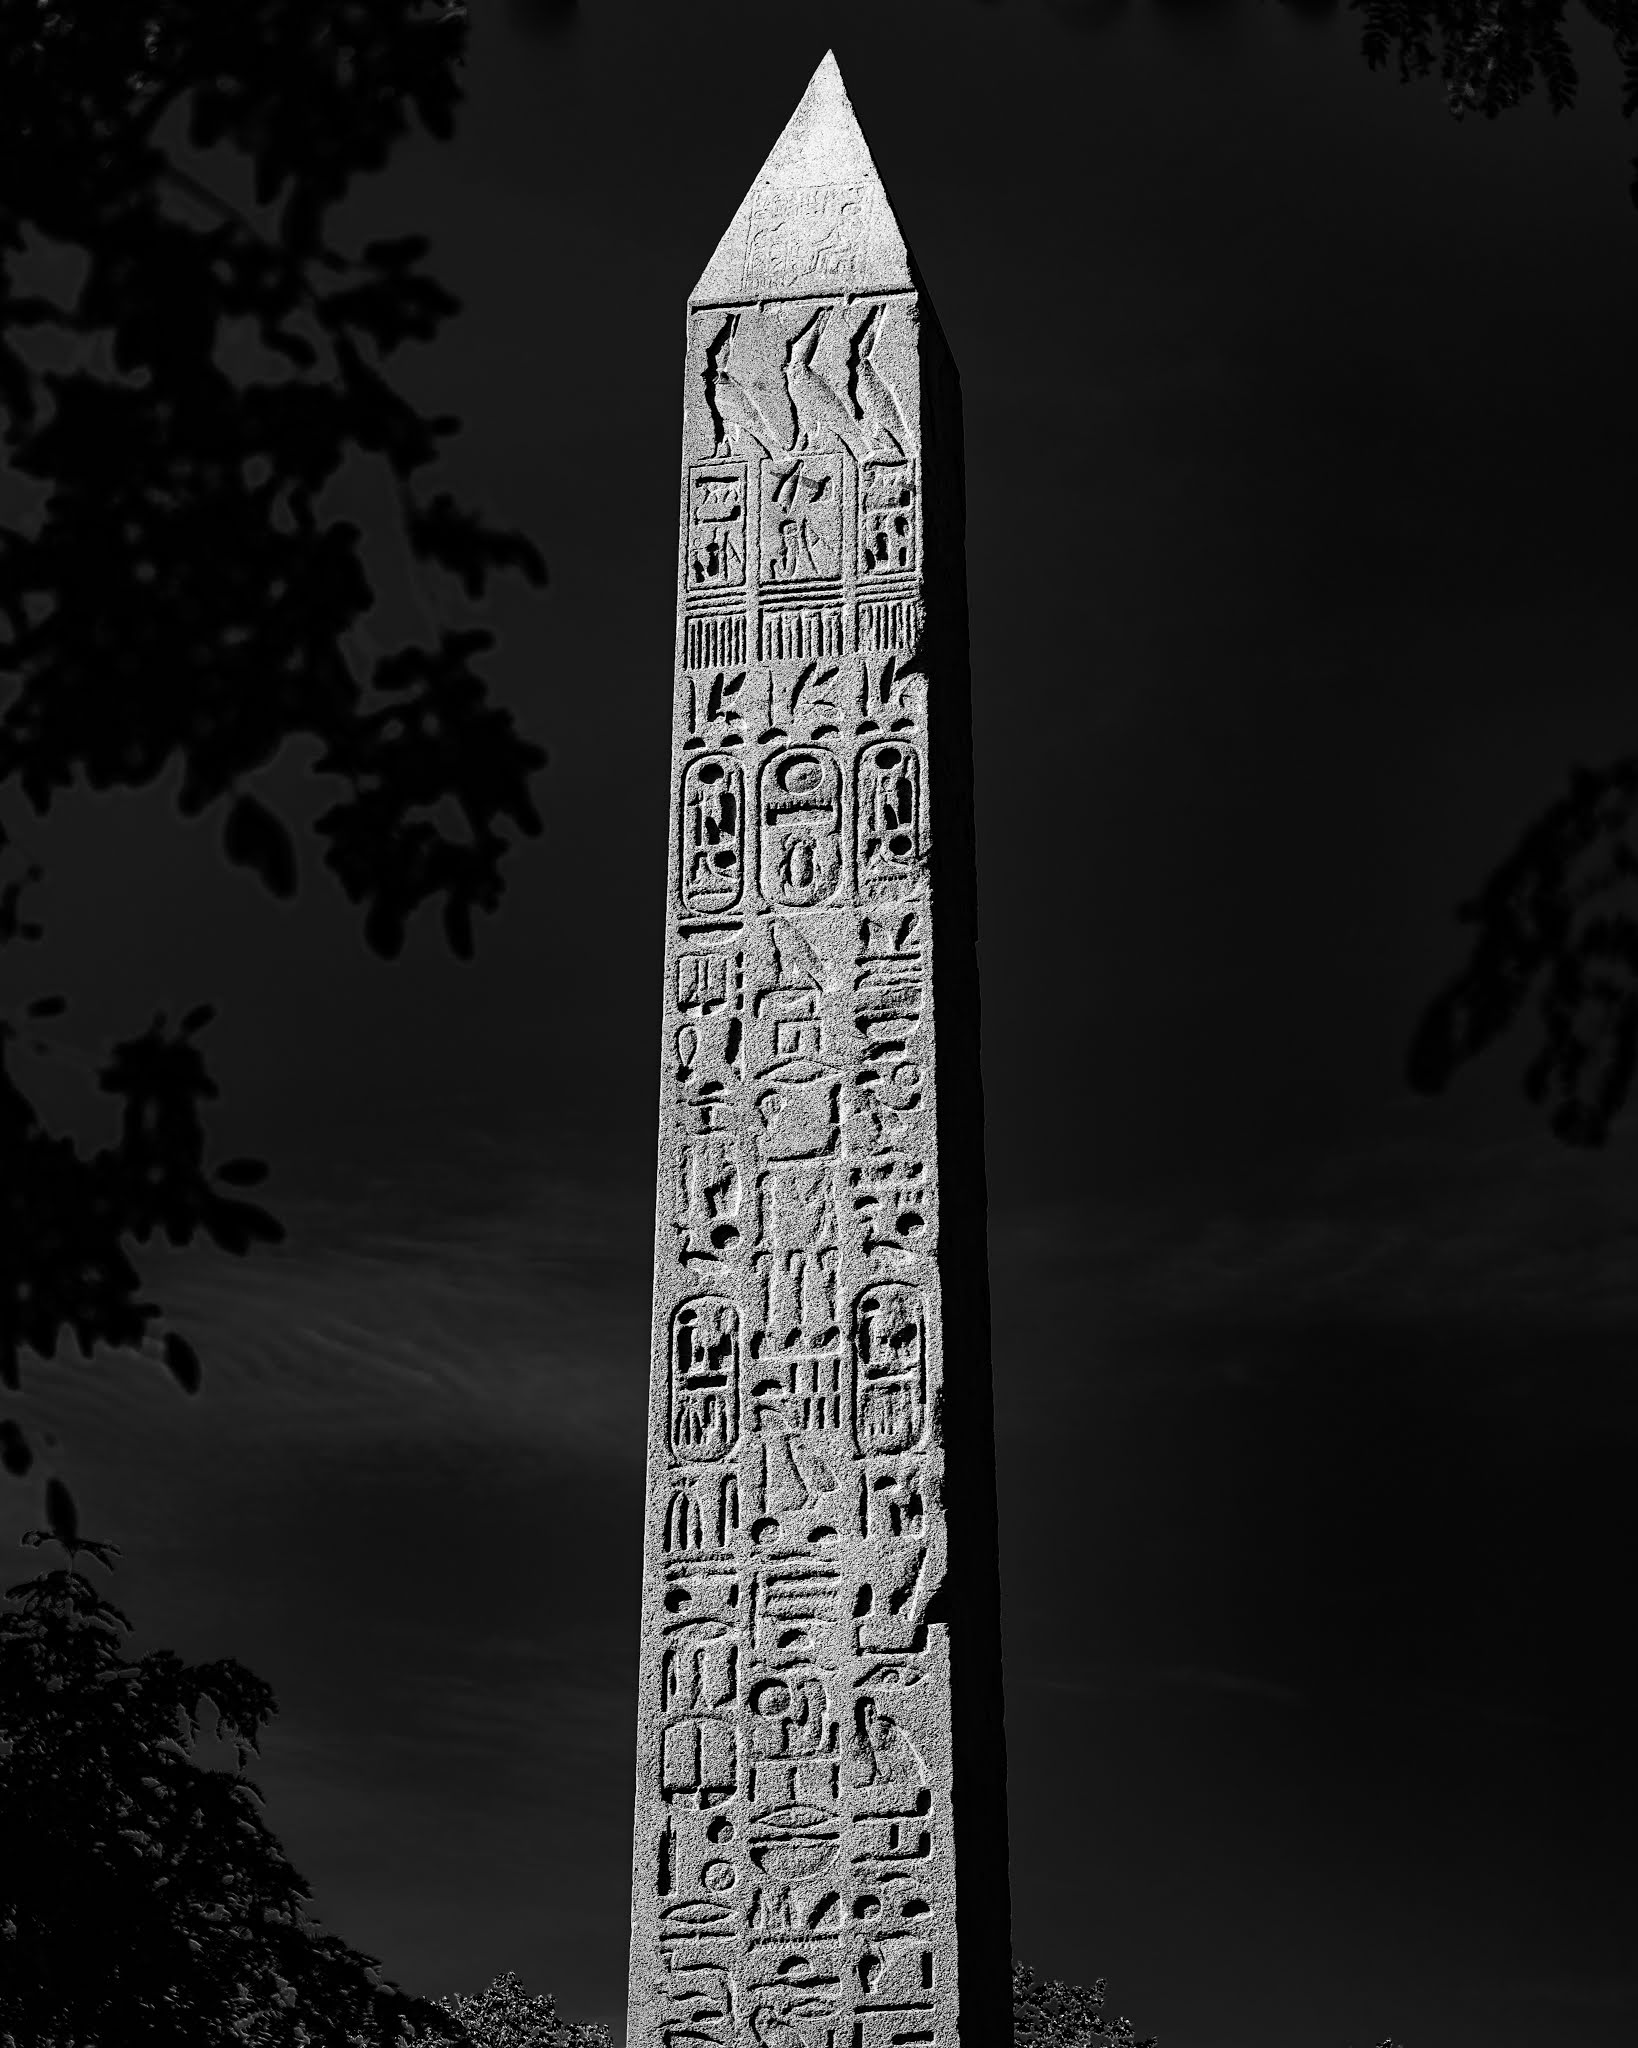 a photo of an egyptian obelisk in central park new york